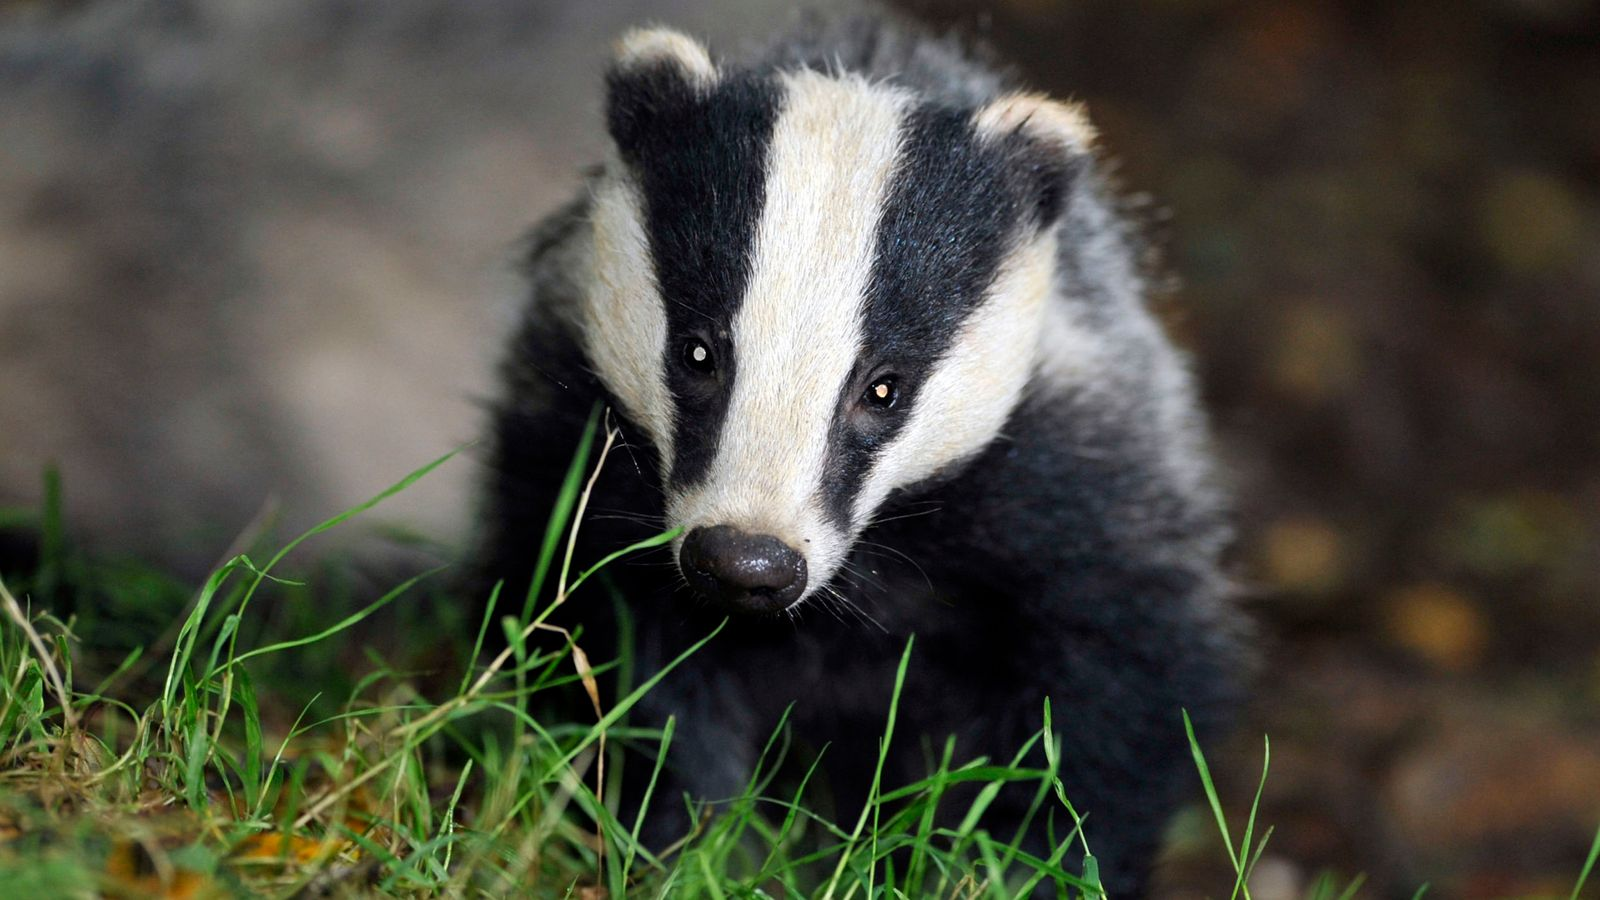 Badger culling to tackle TB in livestock to be phased out, govt announces